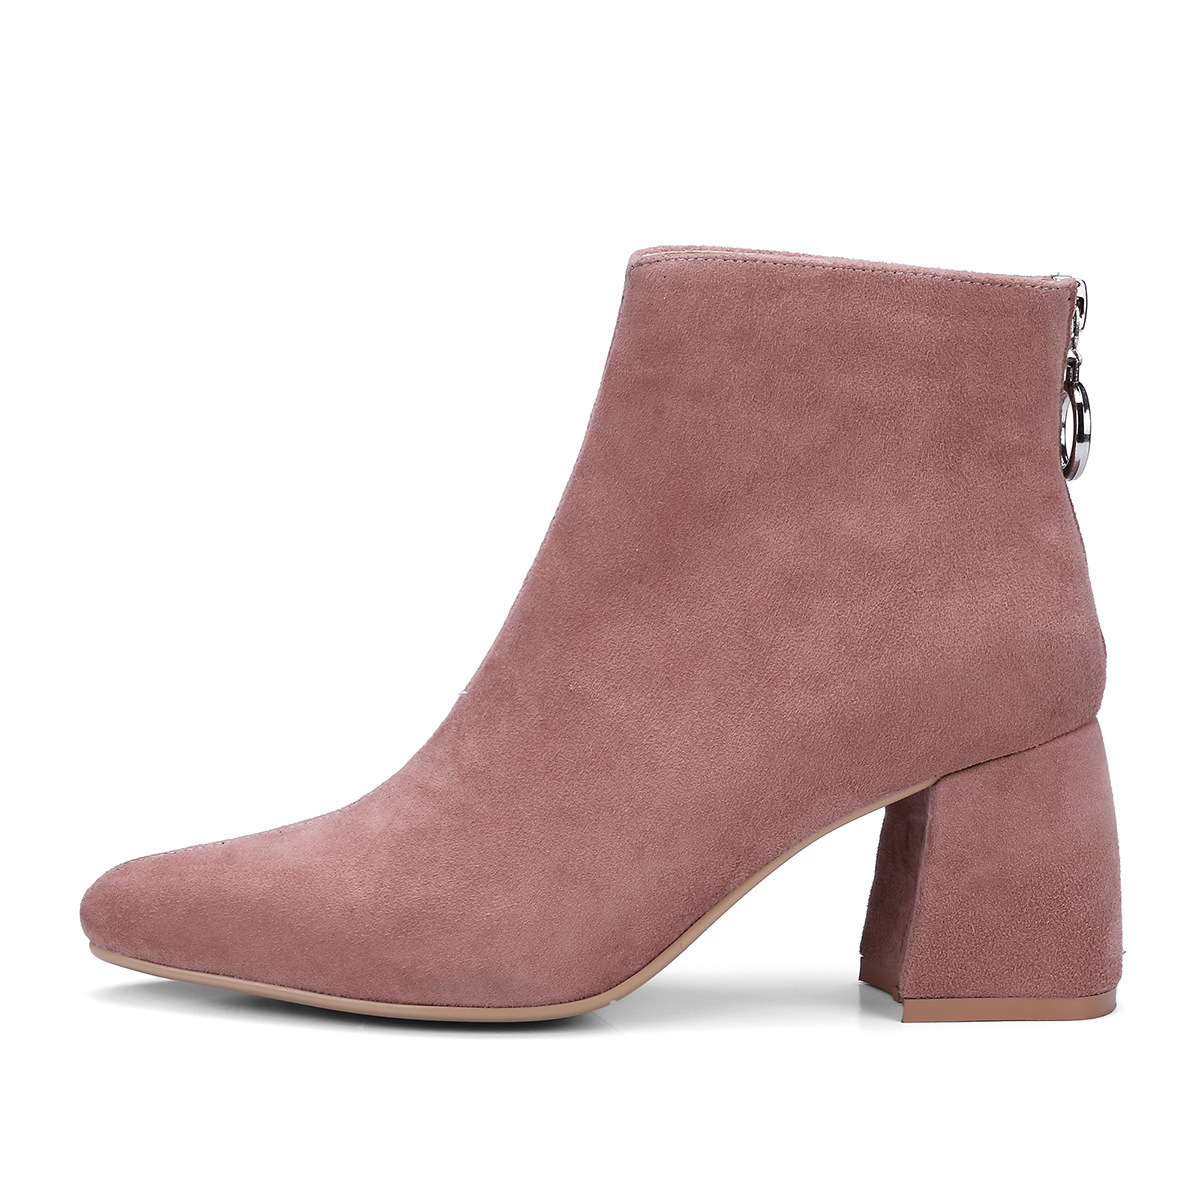 New Winter Women Suede High Heels Martin Boots Pointed Toe Zipper Booties Genuine Leather Chunky Heel Ankle Boot Shoes Nude Pink elegant beige high heel 2017 booties autumn chunky metal genuine leather luxury brand shoes women boots short ankle pointed toe